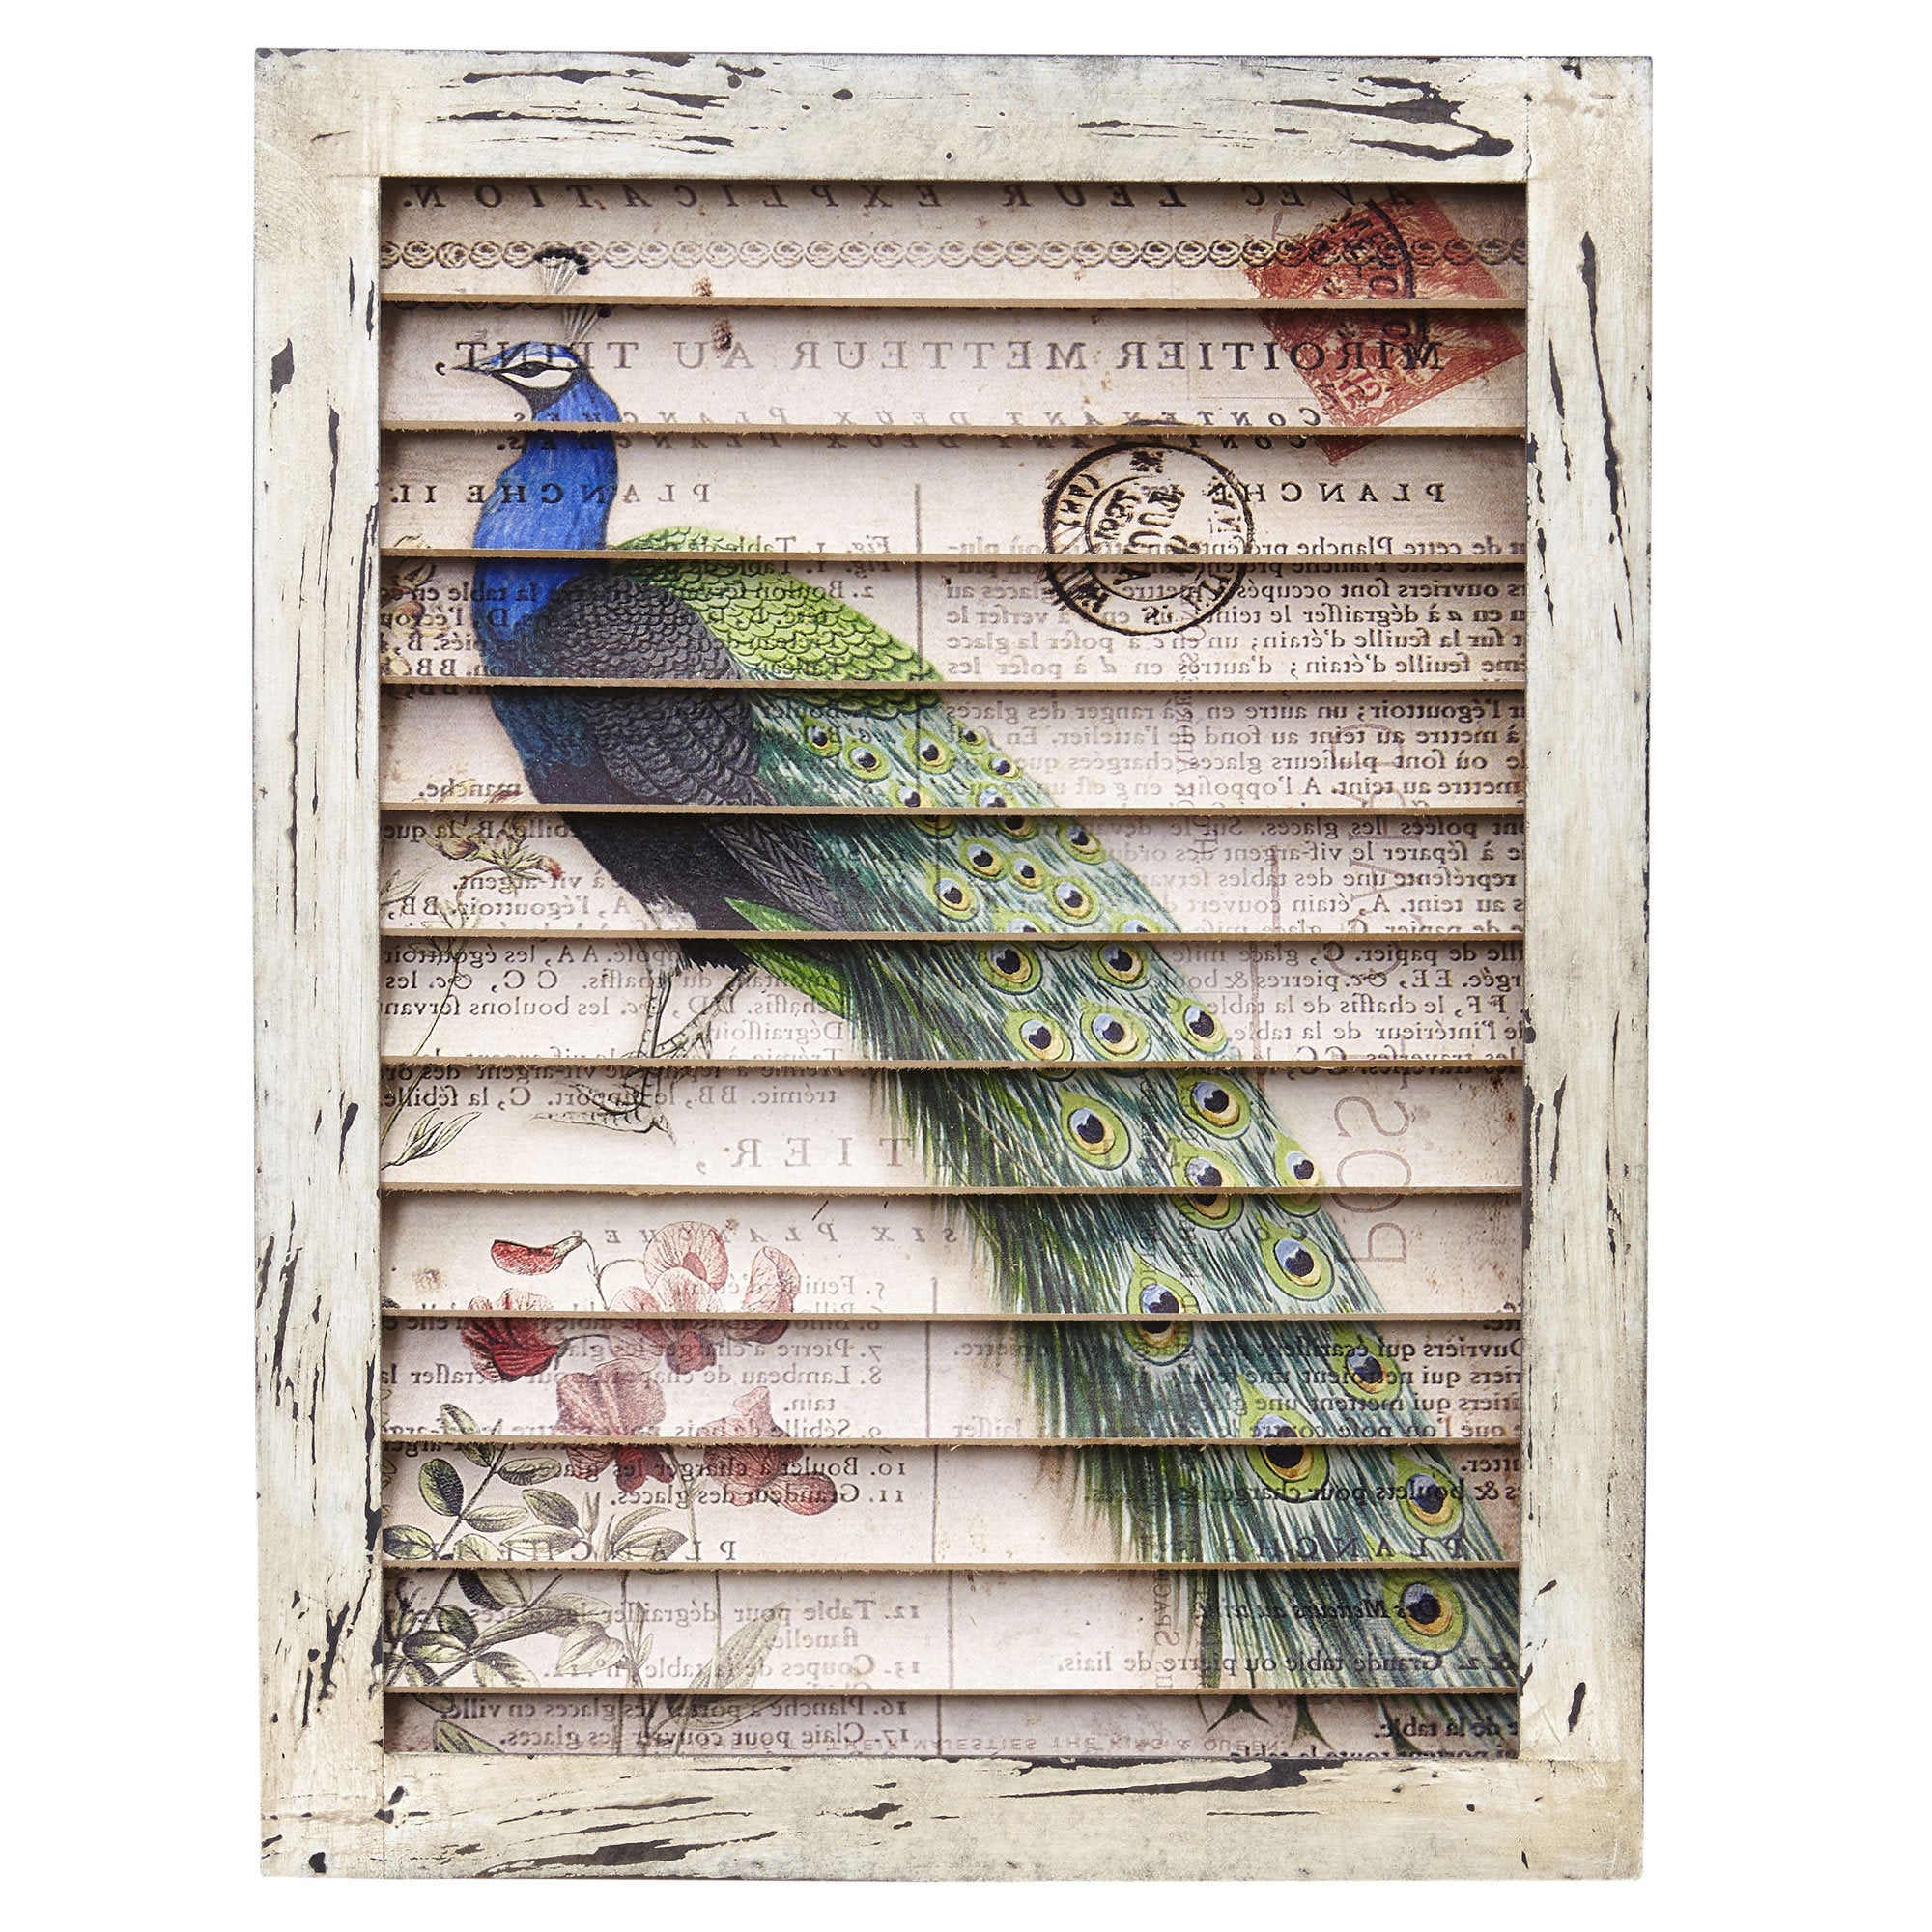 Widely Used Shutter Window Hanging Wall Decor With Regard To Shop Nearly Natural Peacock Wood Metal Window Shutter Wall Decor (View 20 of 20)